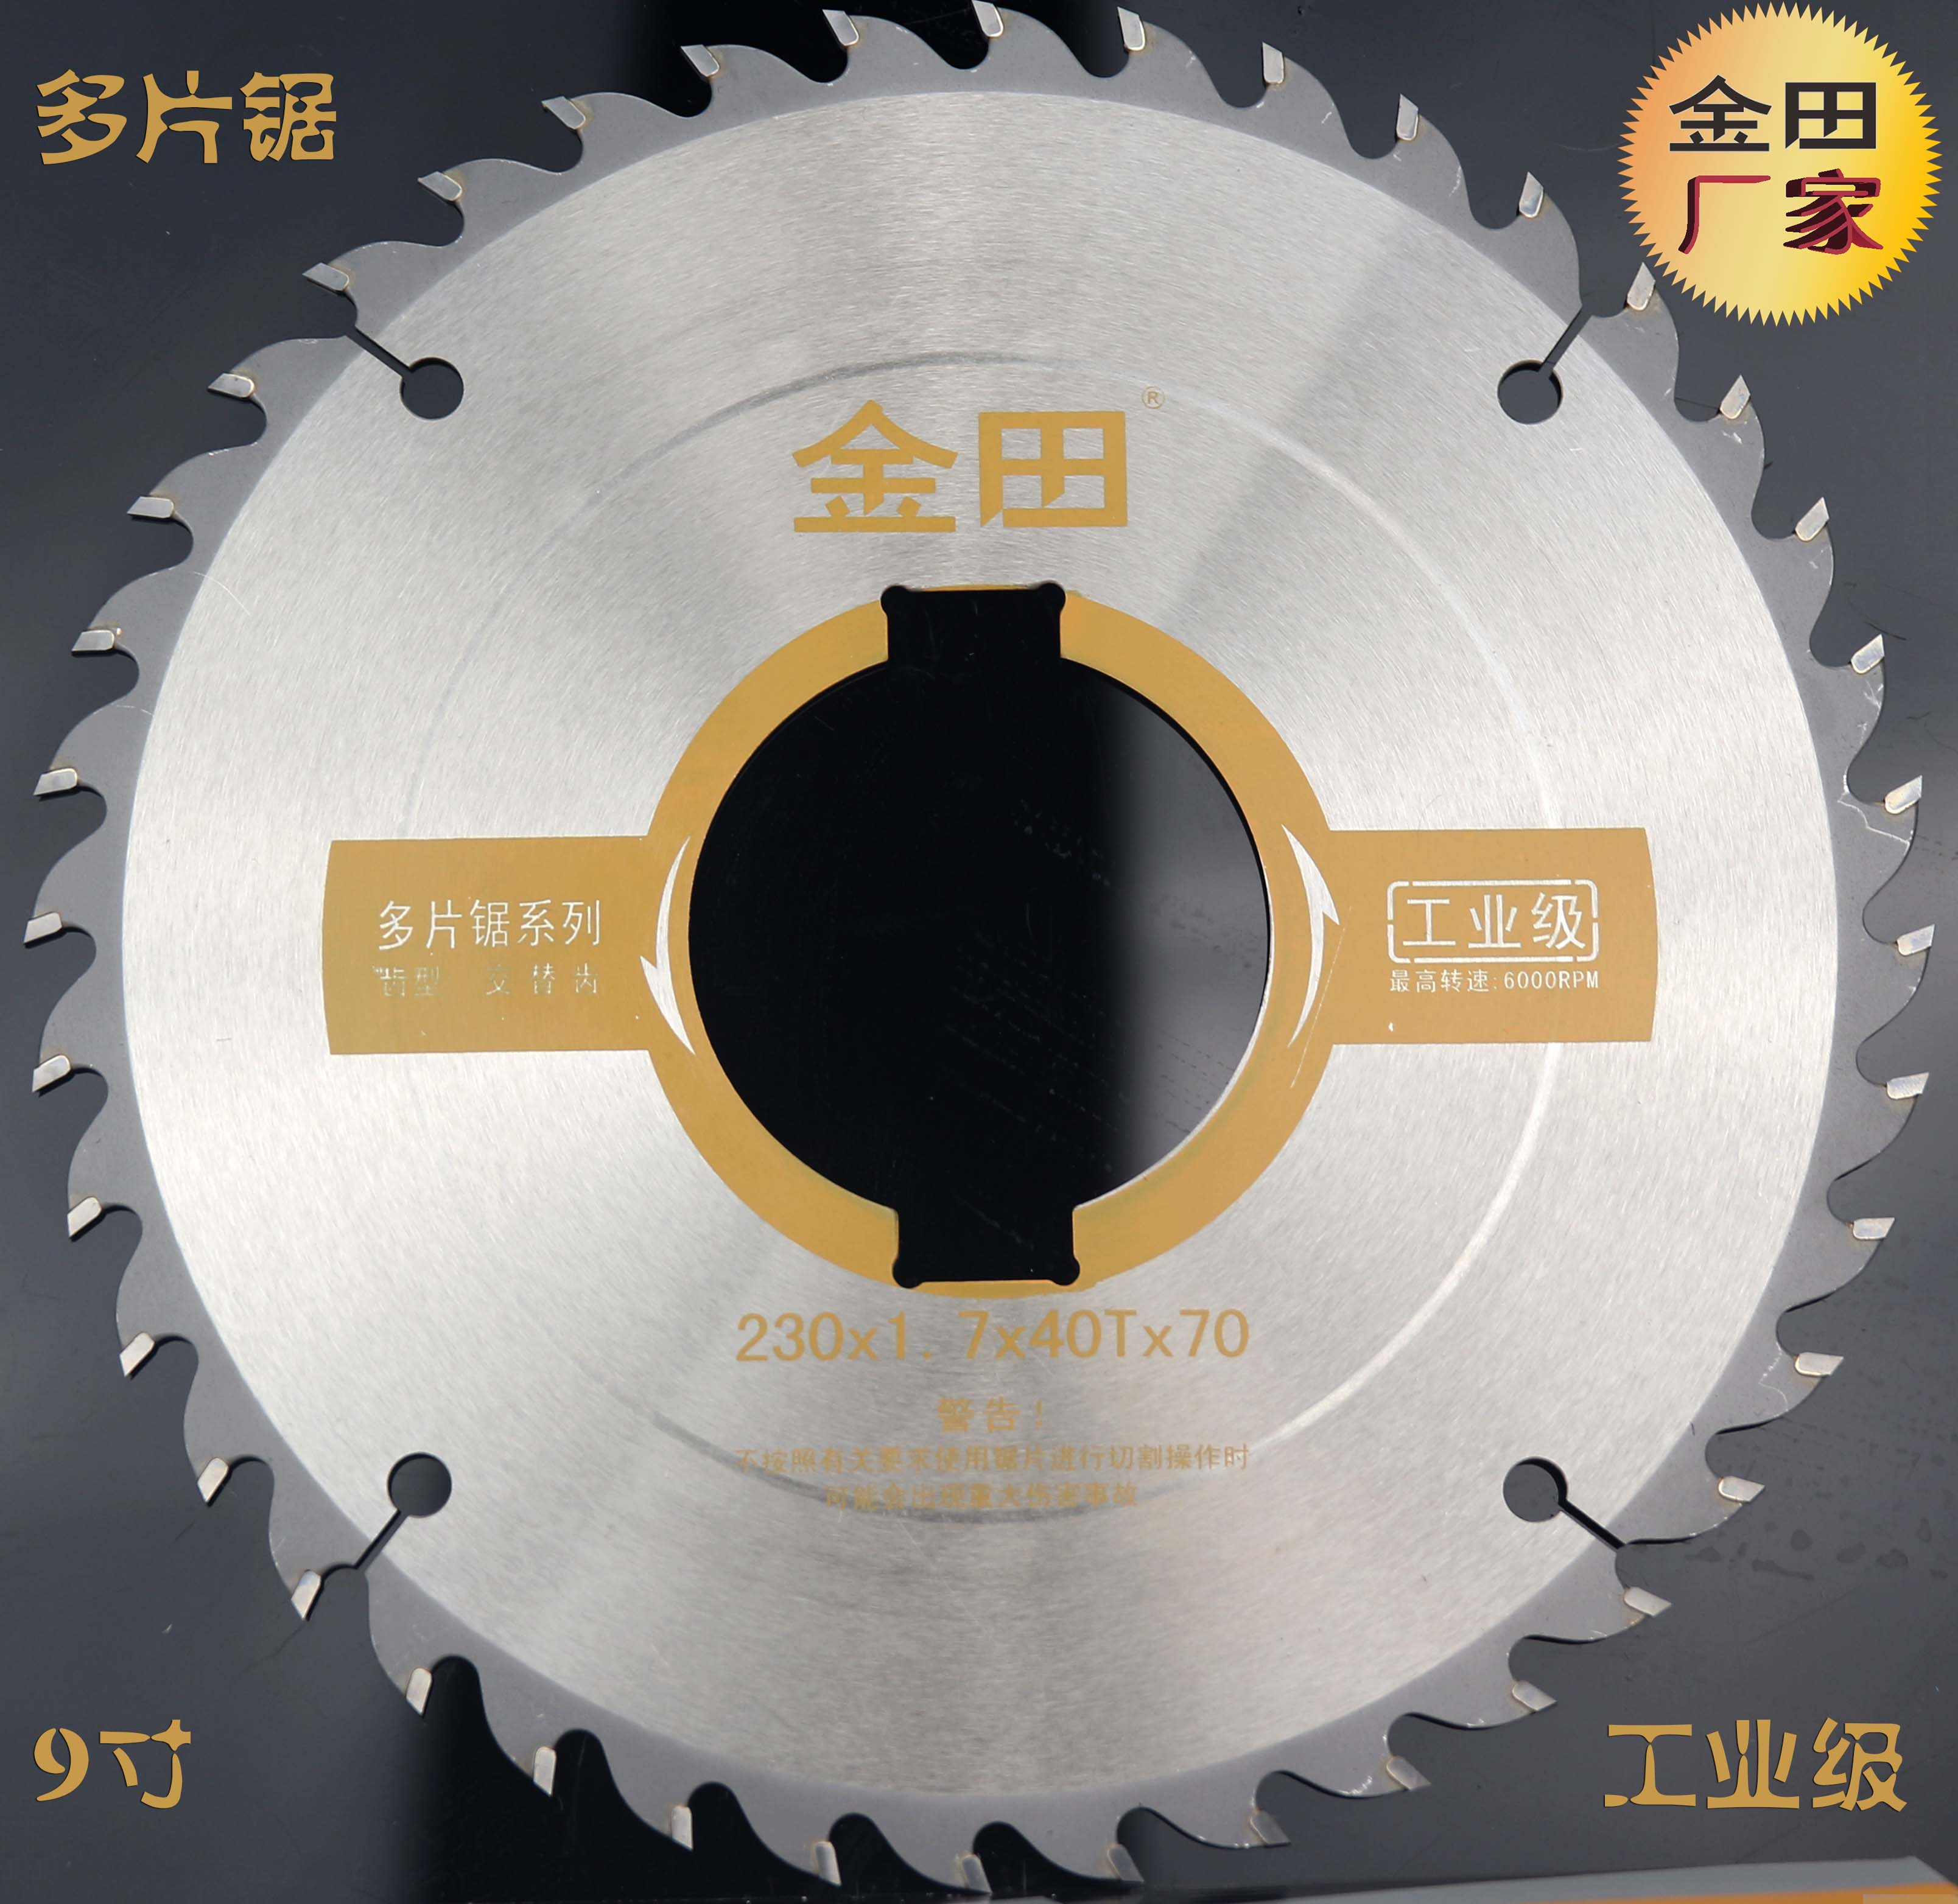 Kaneda brand wood series of multi saw blade saws industrial grade 5 inch 6 inch 8 inch 9 inch circular saw blade